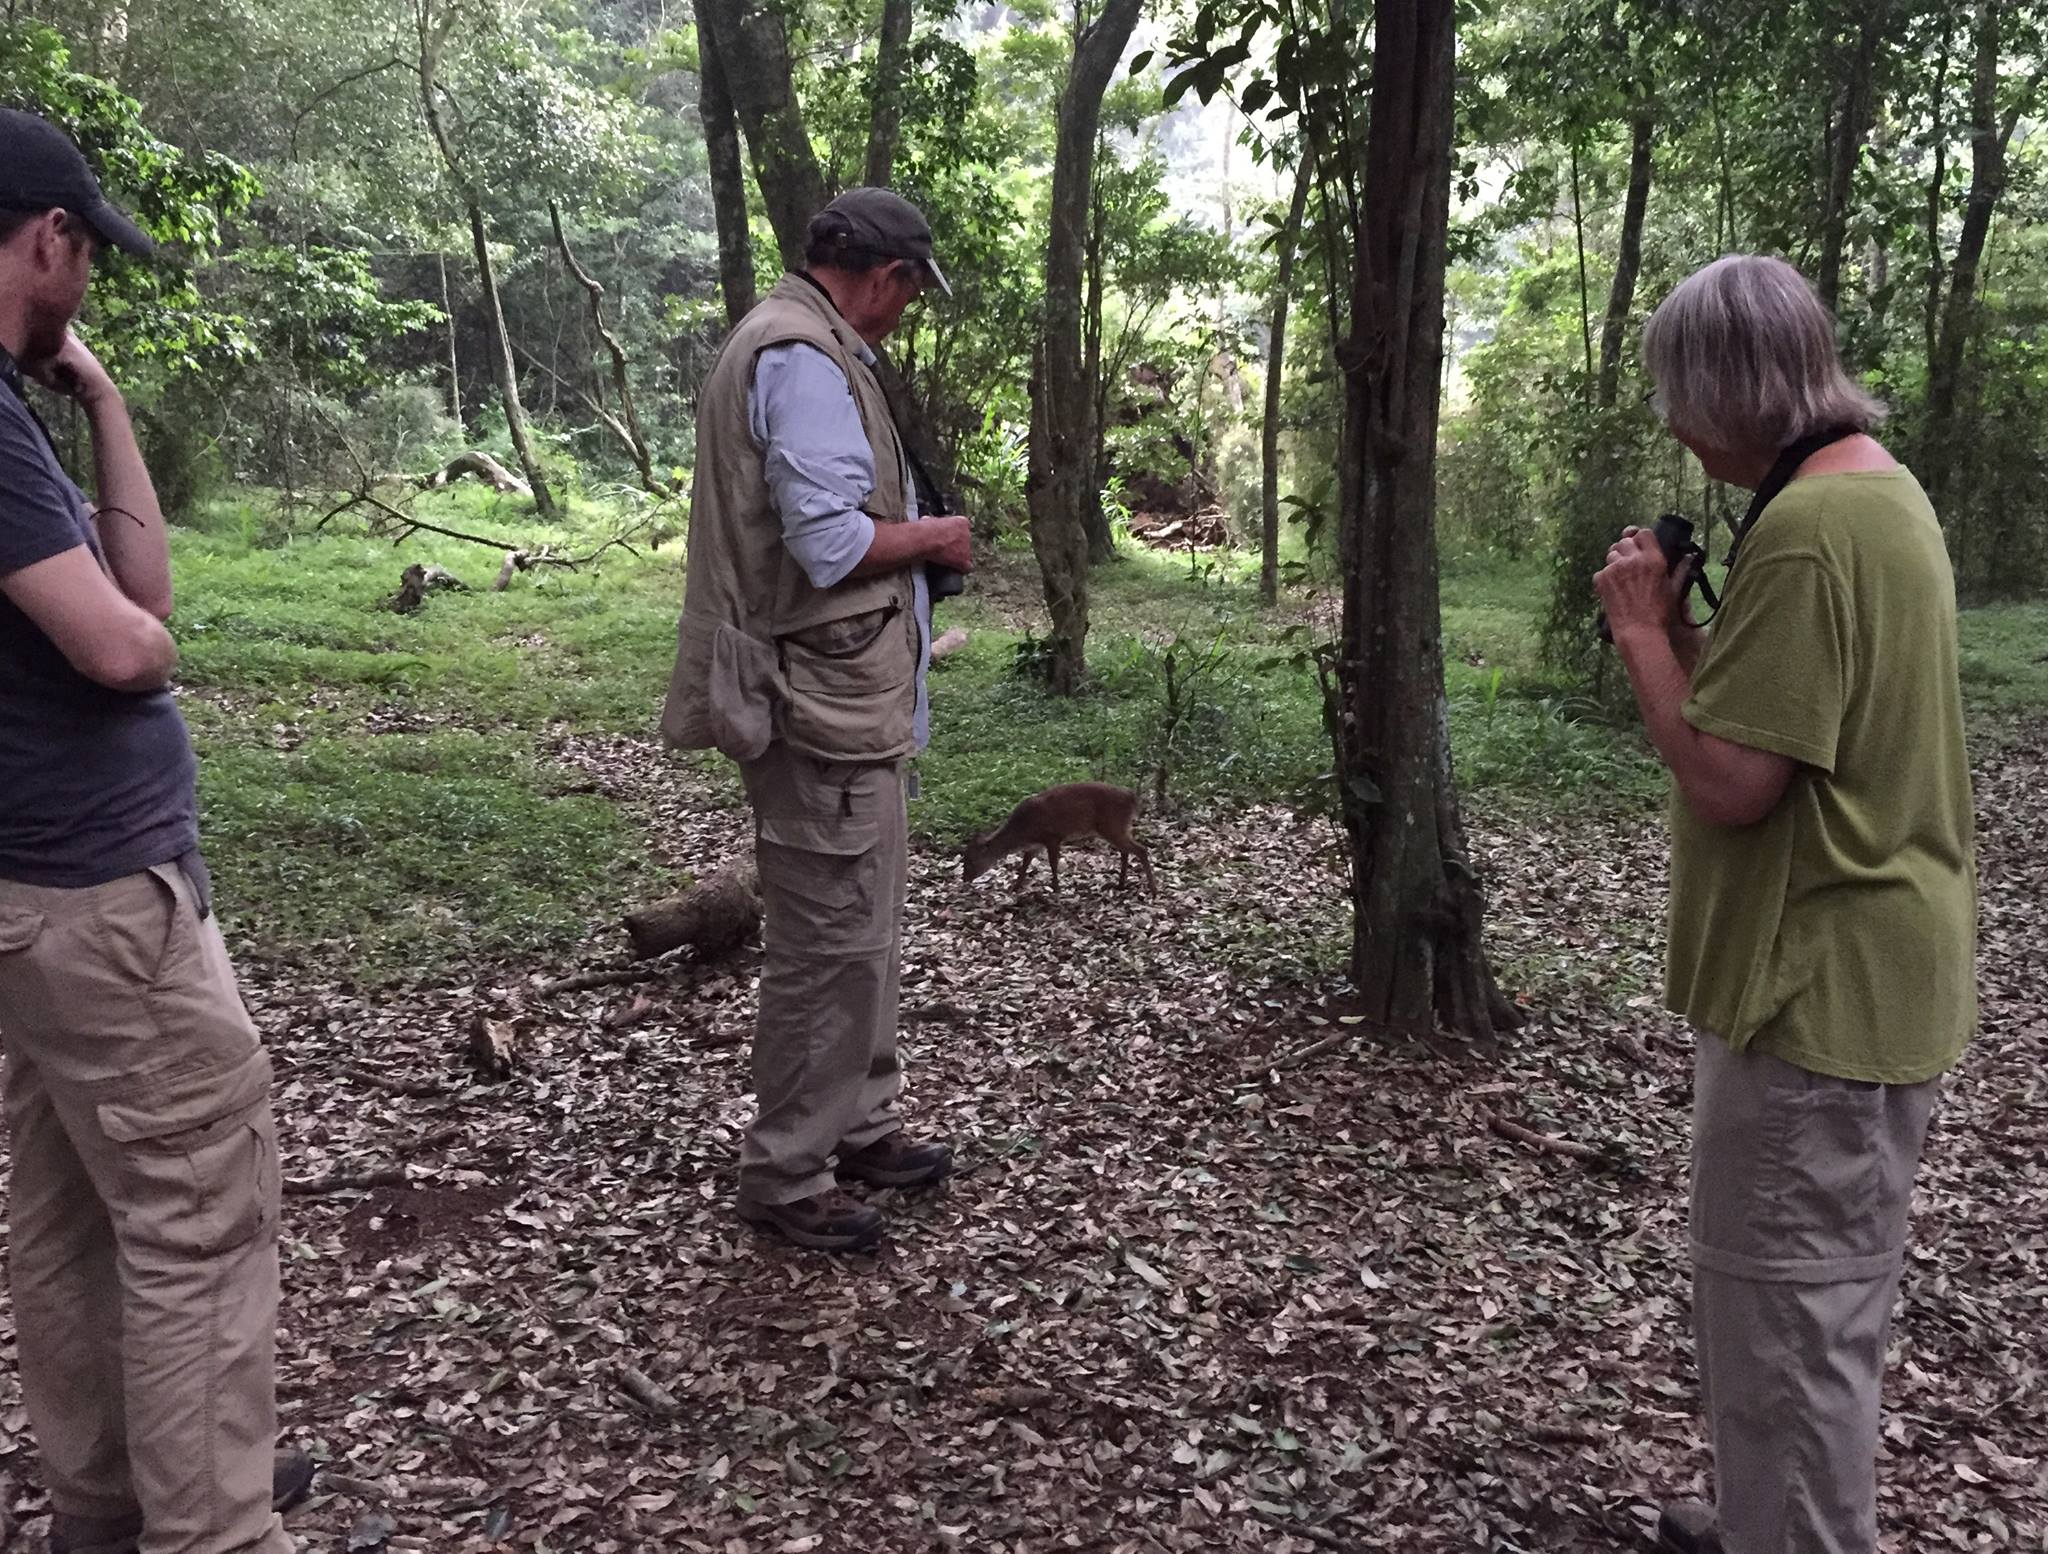 Sharing a moment with a Blue Duiker